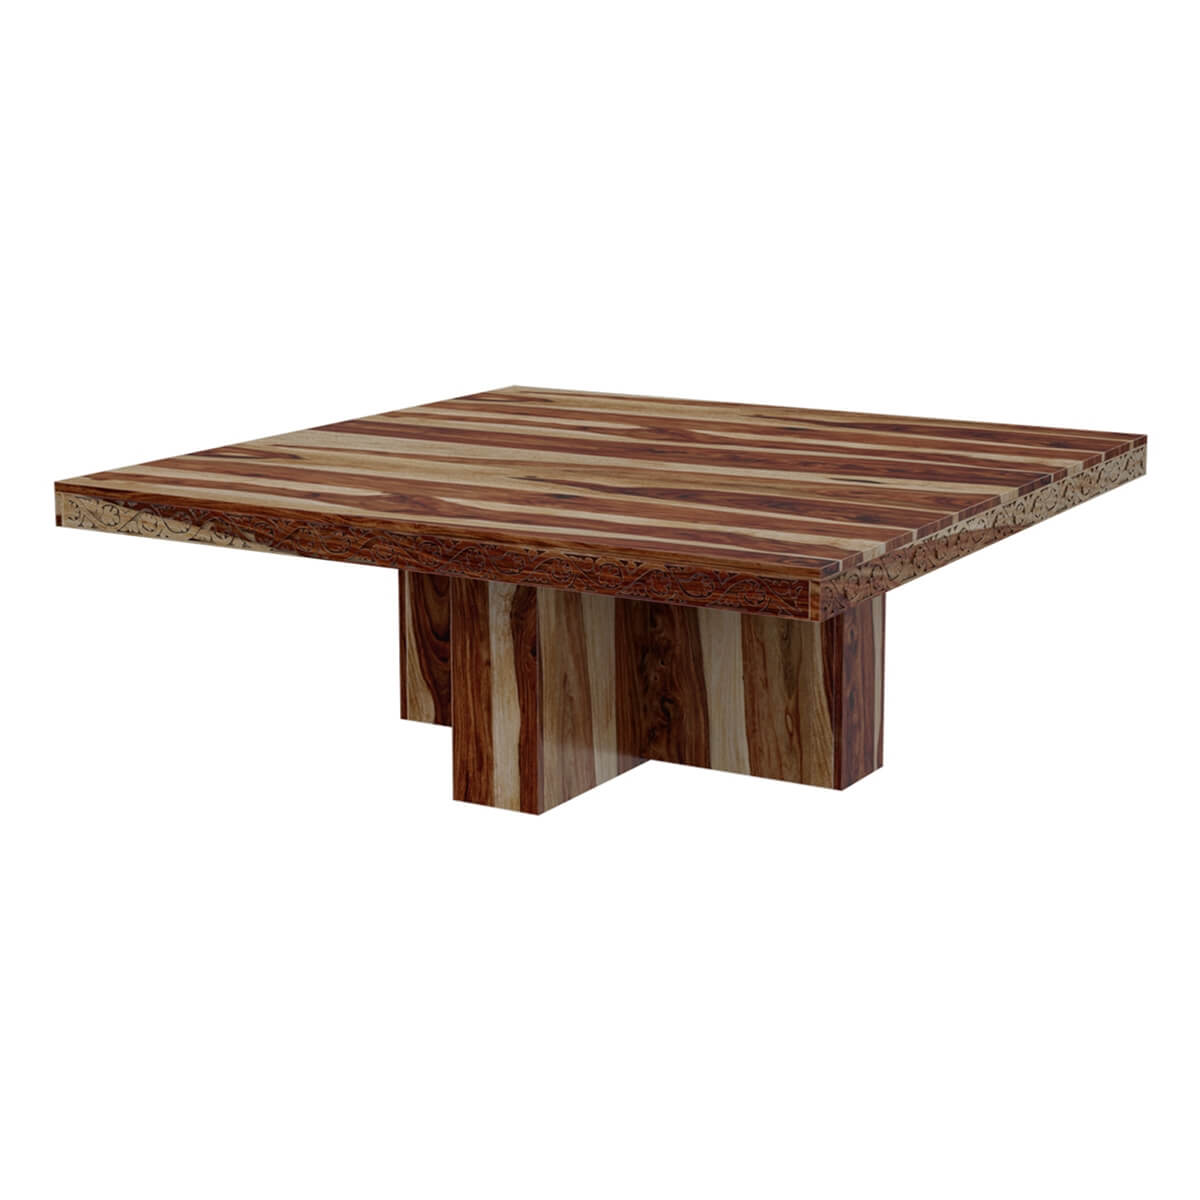 dallas ranch solid wood pedestal rustic large square dining room table. ranch solid wood pedestal rustic large square dining room table